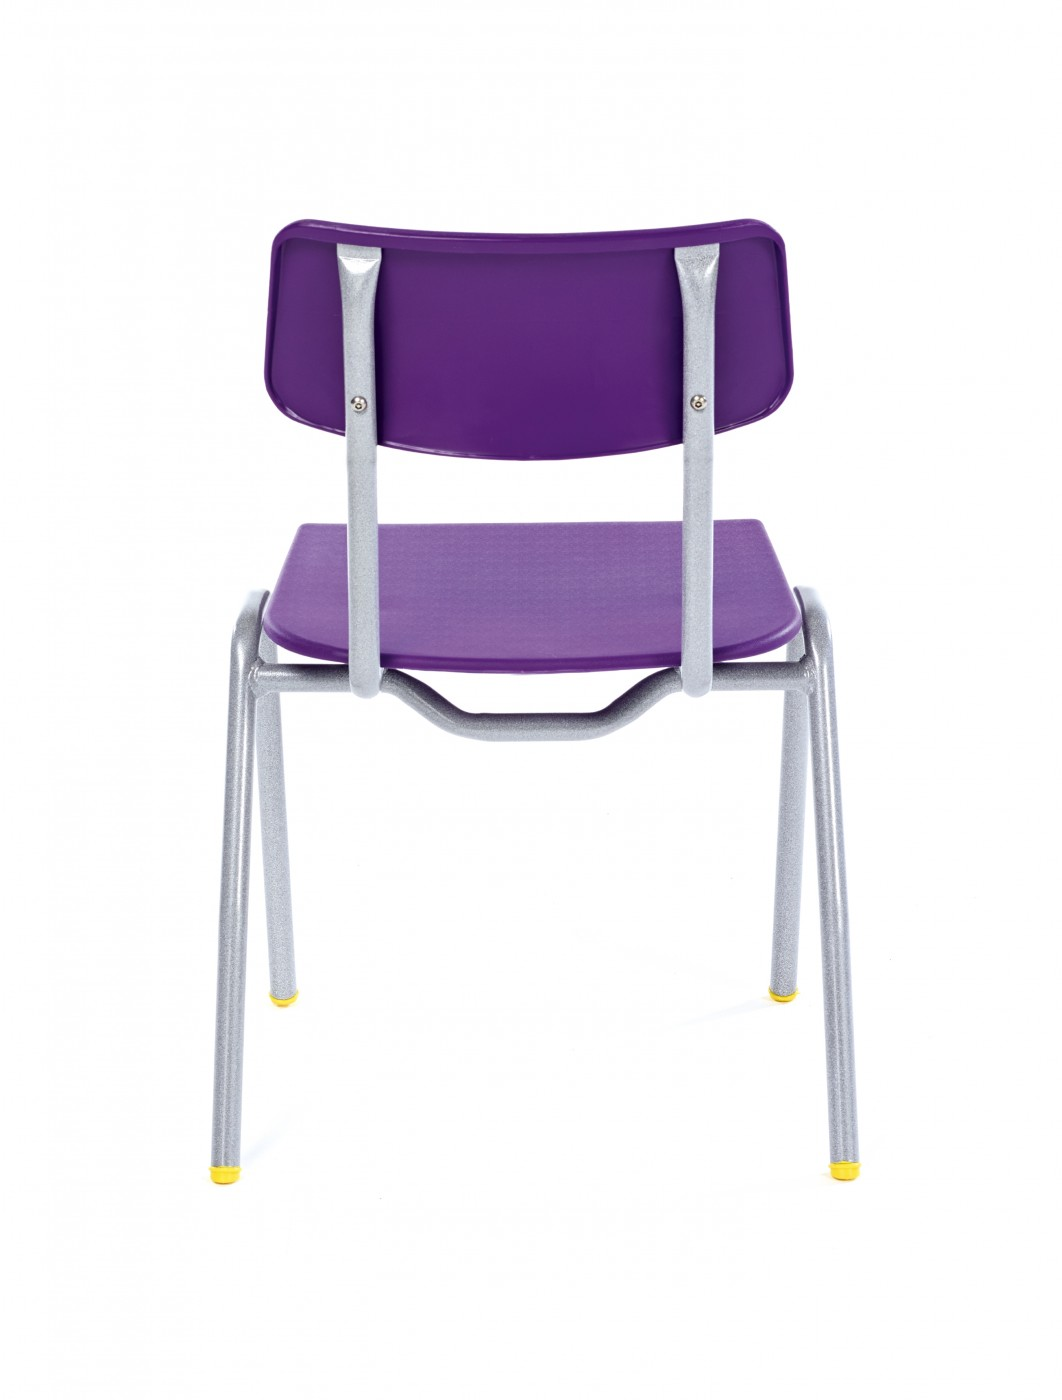 Metalliform BS Chairs   Age 8 11 Years Polypropylene Classroom Chairs BSD    Enlarged View